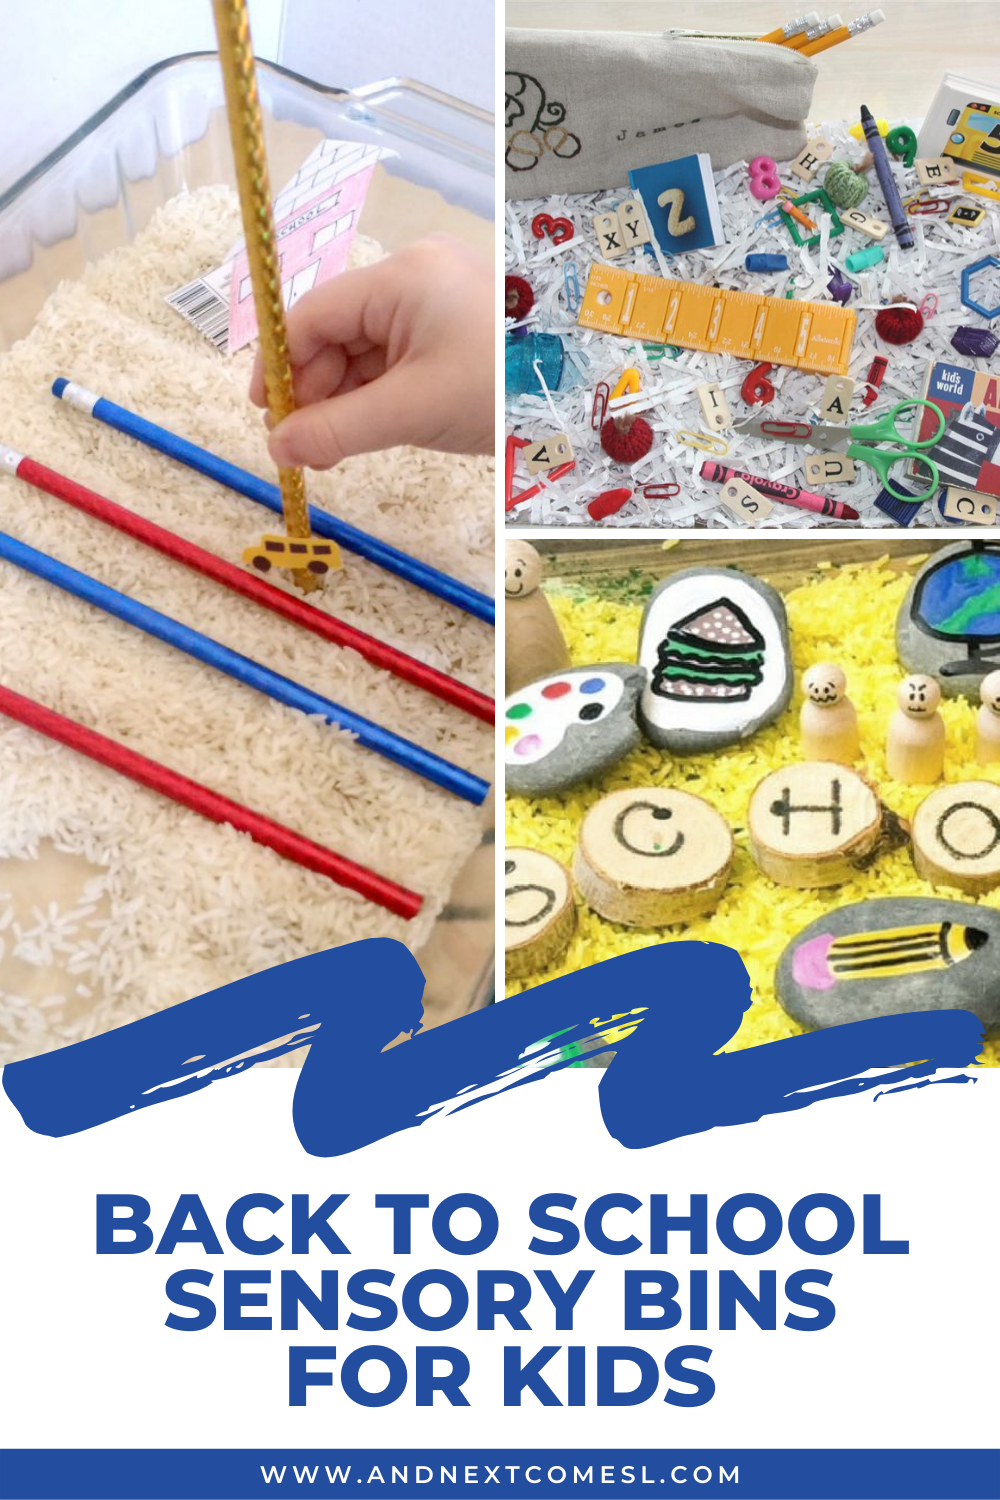 Fun back to school sensory bins for toddlers and preschoolers